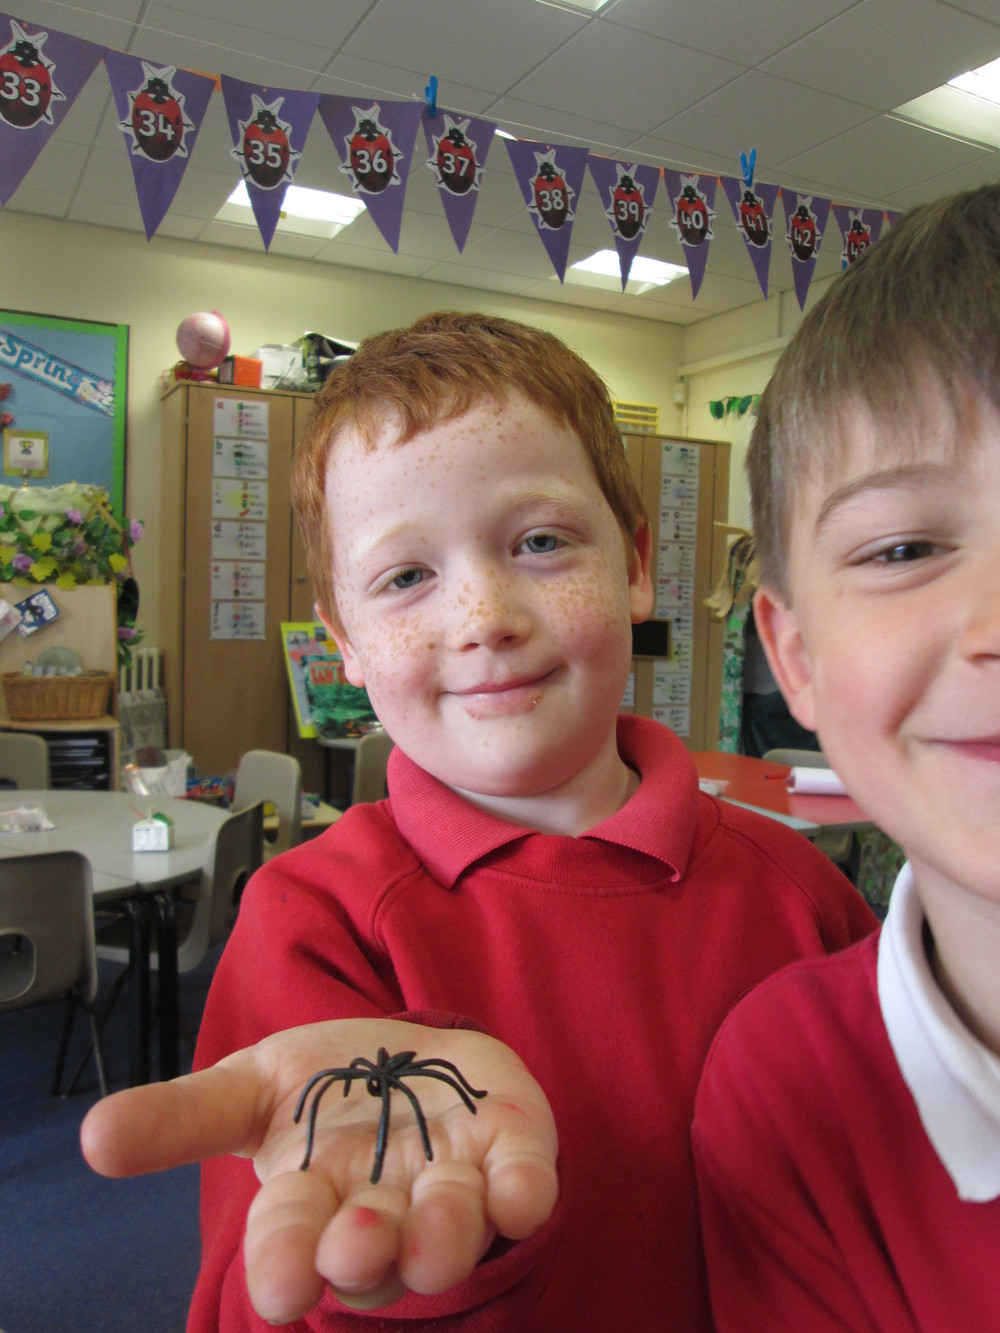 Thomas overcame his fear of spiders this week.  We are all extremely proud of you Thomas.  Well done!